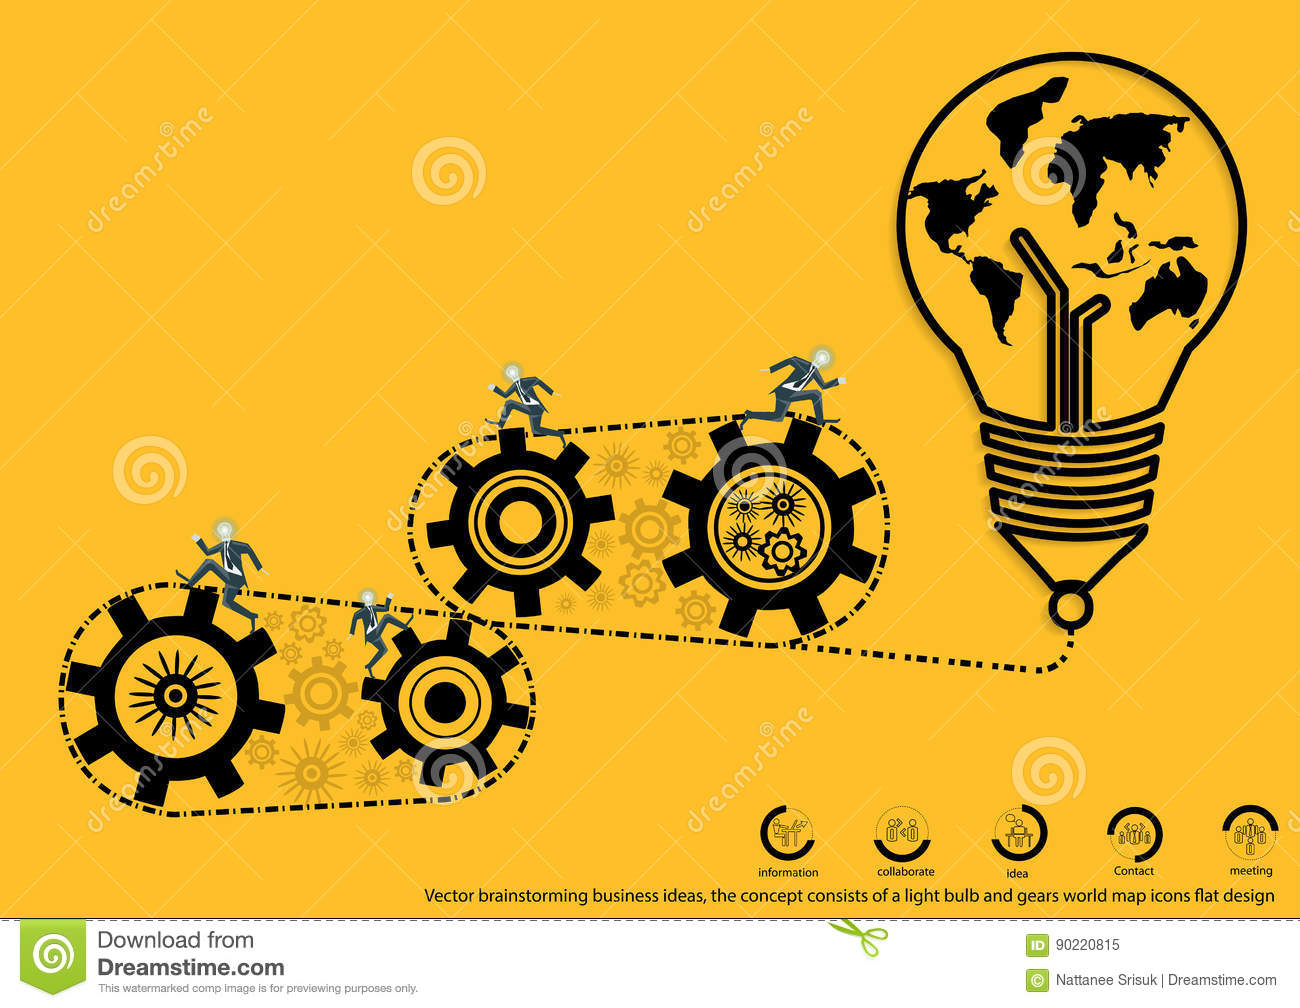 Vector Brainstorming Business Ideas The Concept Consists